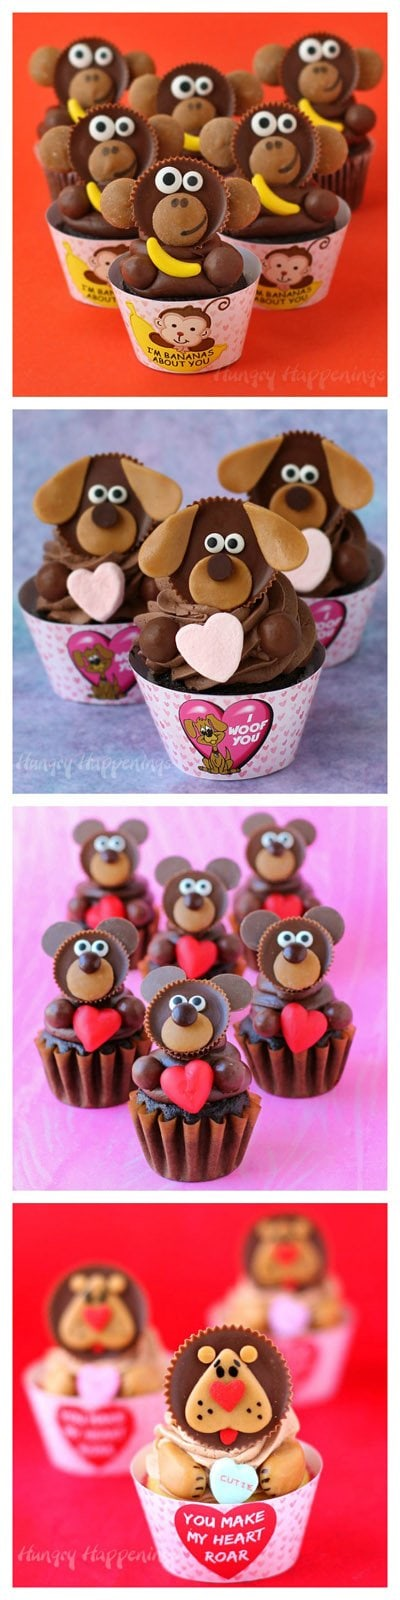 Reese's cup Valentine's Day Cupcakes. See the tutorials at HungryHappenings.com.